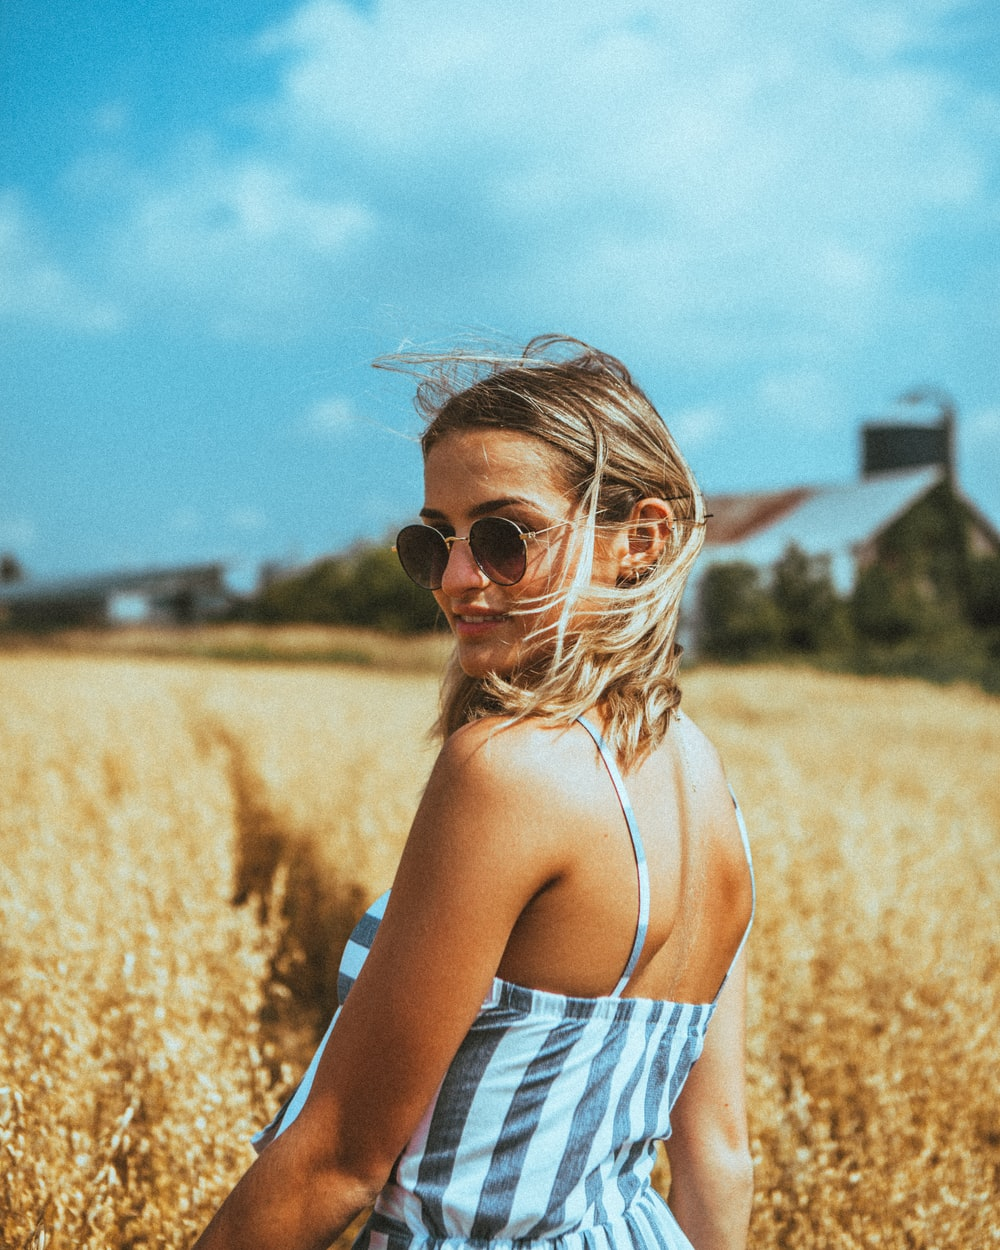 woman in white and black stripe tank top wearing sunglasses standing on brown grass field during